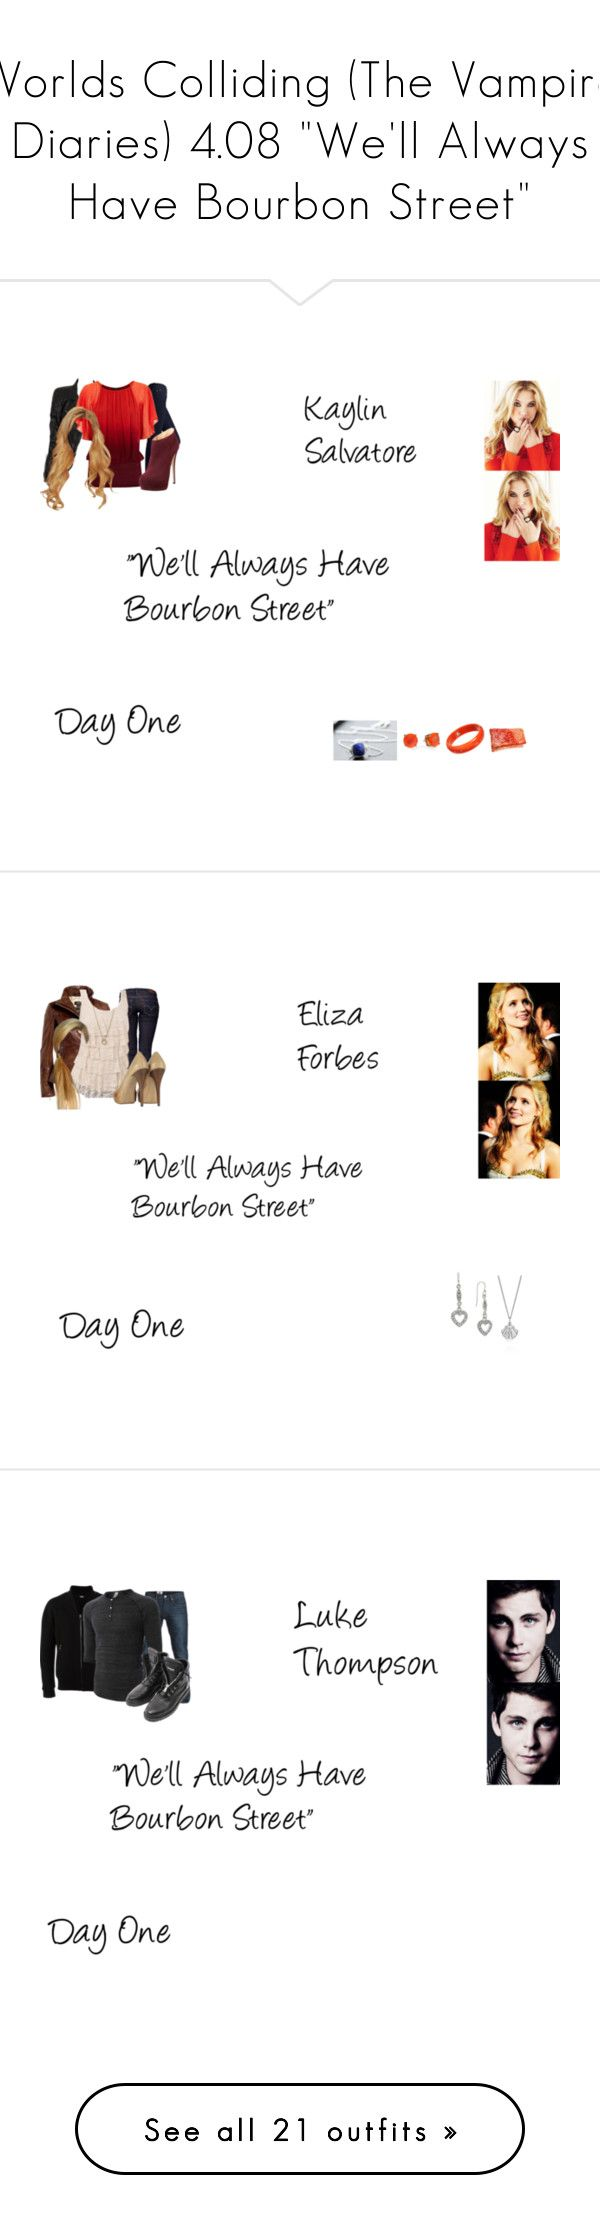 """""""Worlds Colliding (The Vampire Diaries) 4.08 """"We'll Always Have Bourbon Street"""""""" by mysticfalls1997 ❤ liked on Polyvore featuring Marc Jacobs, M.i.h Jeans, Coast, Giuseppe Zanotti, Kate Spade, Mark Davis, BCBGeneration, Monday, Levi's and Danier"""